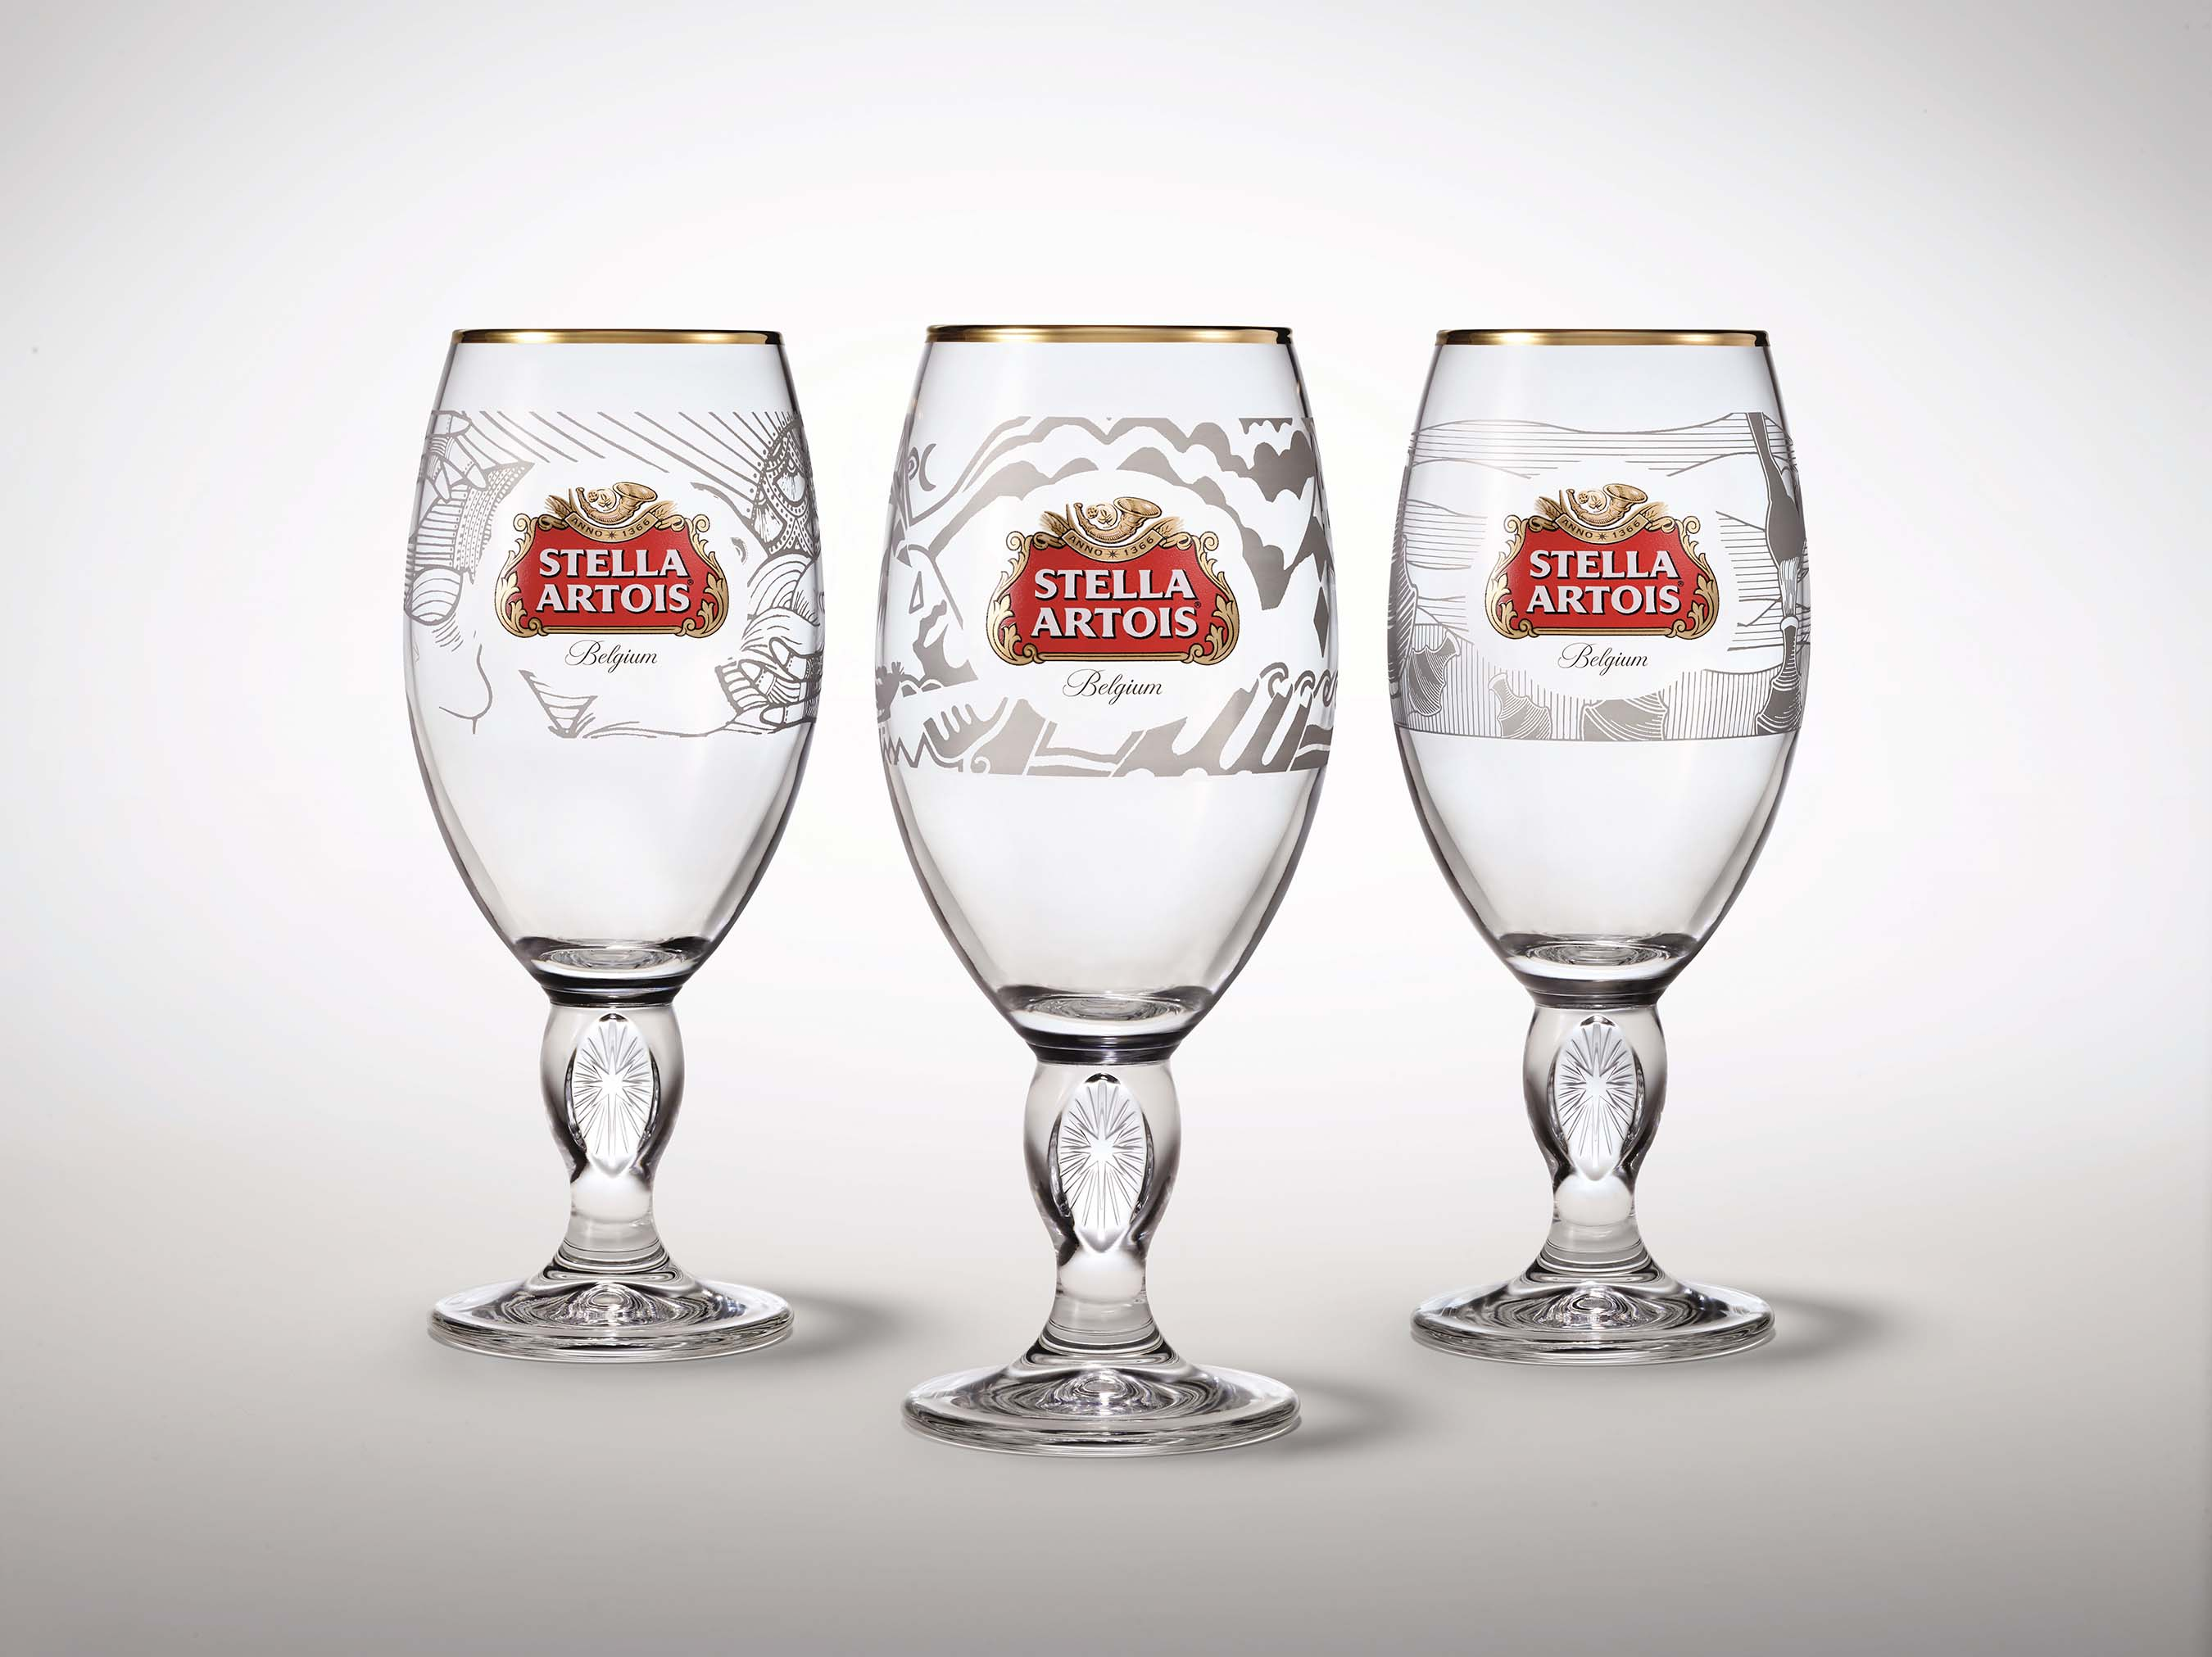 Stella Artois will release a new set of limited-edition Chalices designed by three artists from Kenya, Peru and Haiti: Daniel Cortez Torres from Peru, Wini Awuondo from Kenya and Michele Manuel from Haiti.